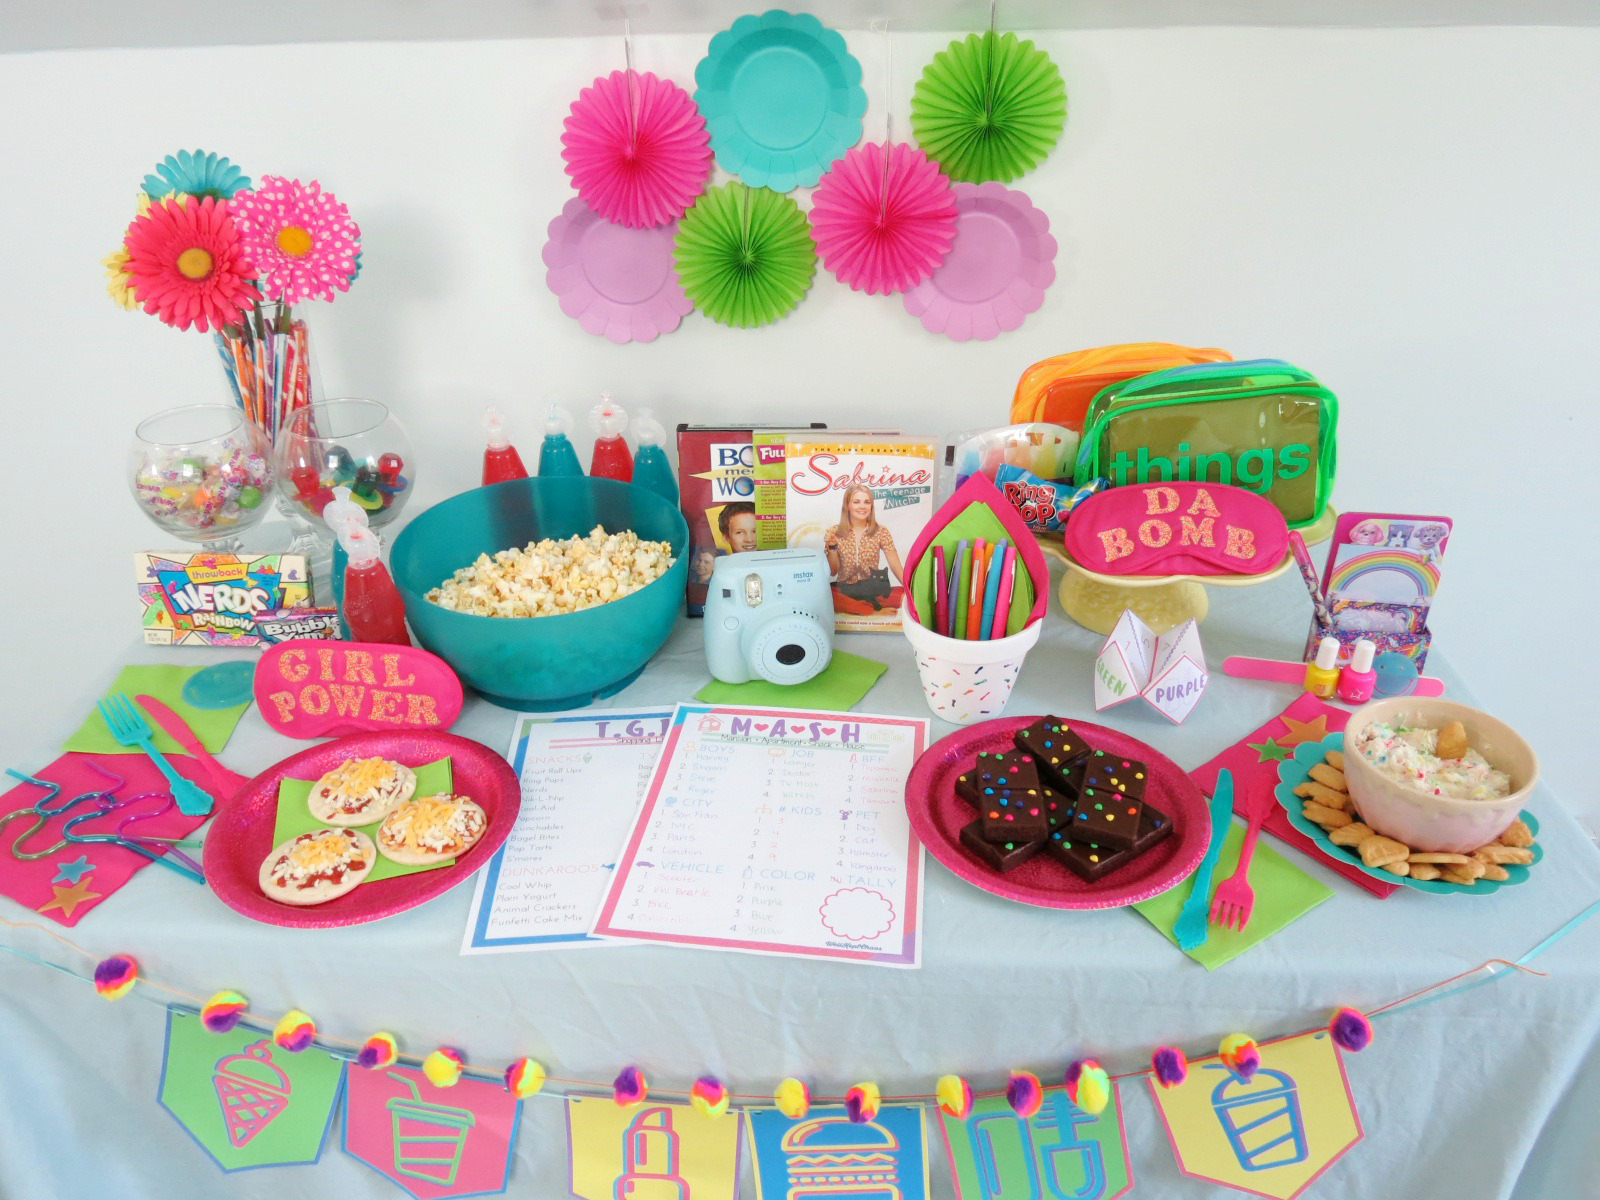 TGIF, AMIRITE GUYS?! WANT TO HOST YOUR OWN TGIF 90'S THEMED SLUMBER PARTY? CLICK FOR MORE PHOTOS, A SHOPPING LIST, AND FREE PRINTABLES!